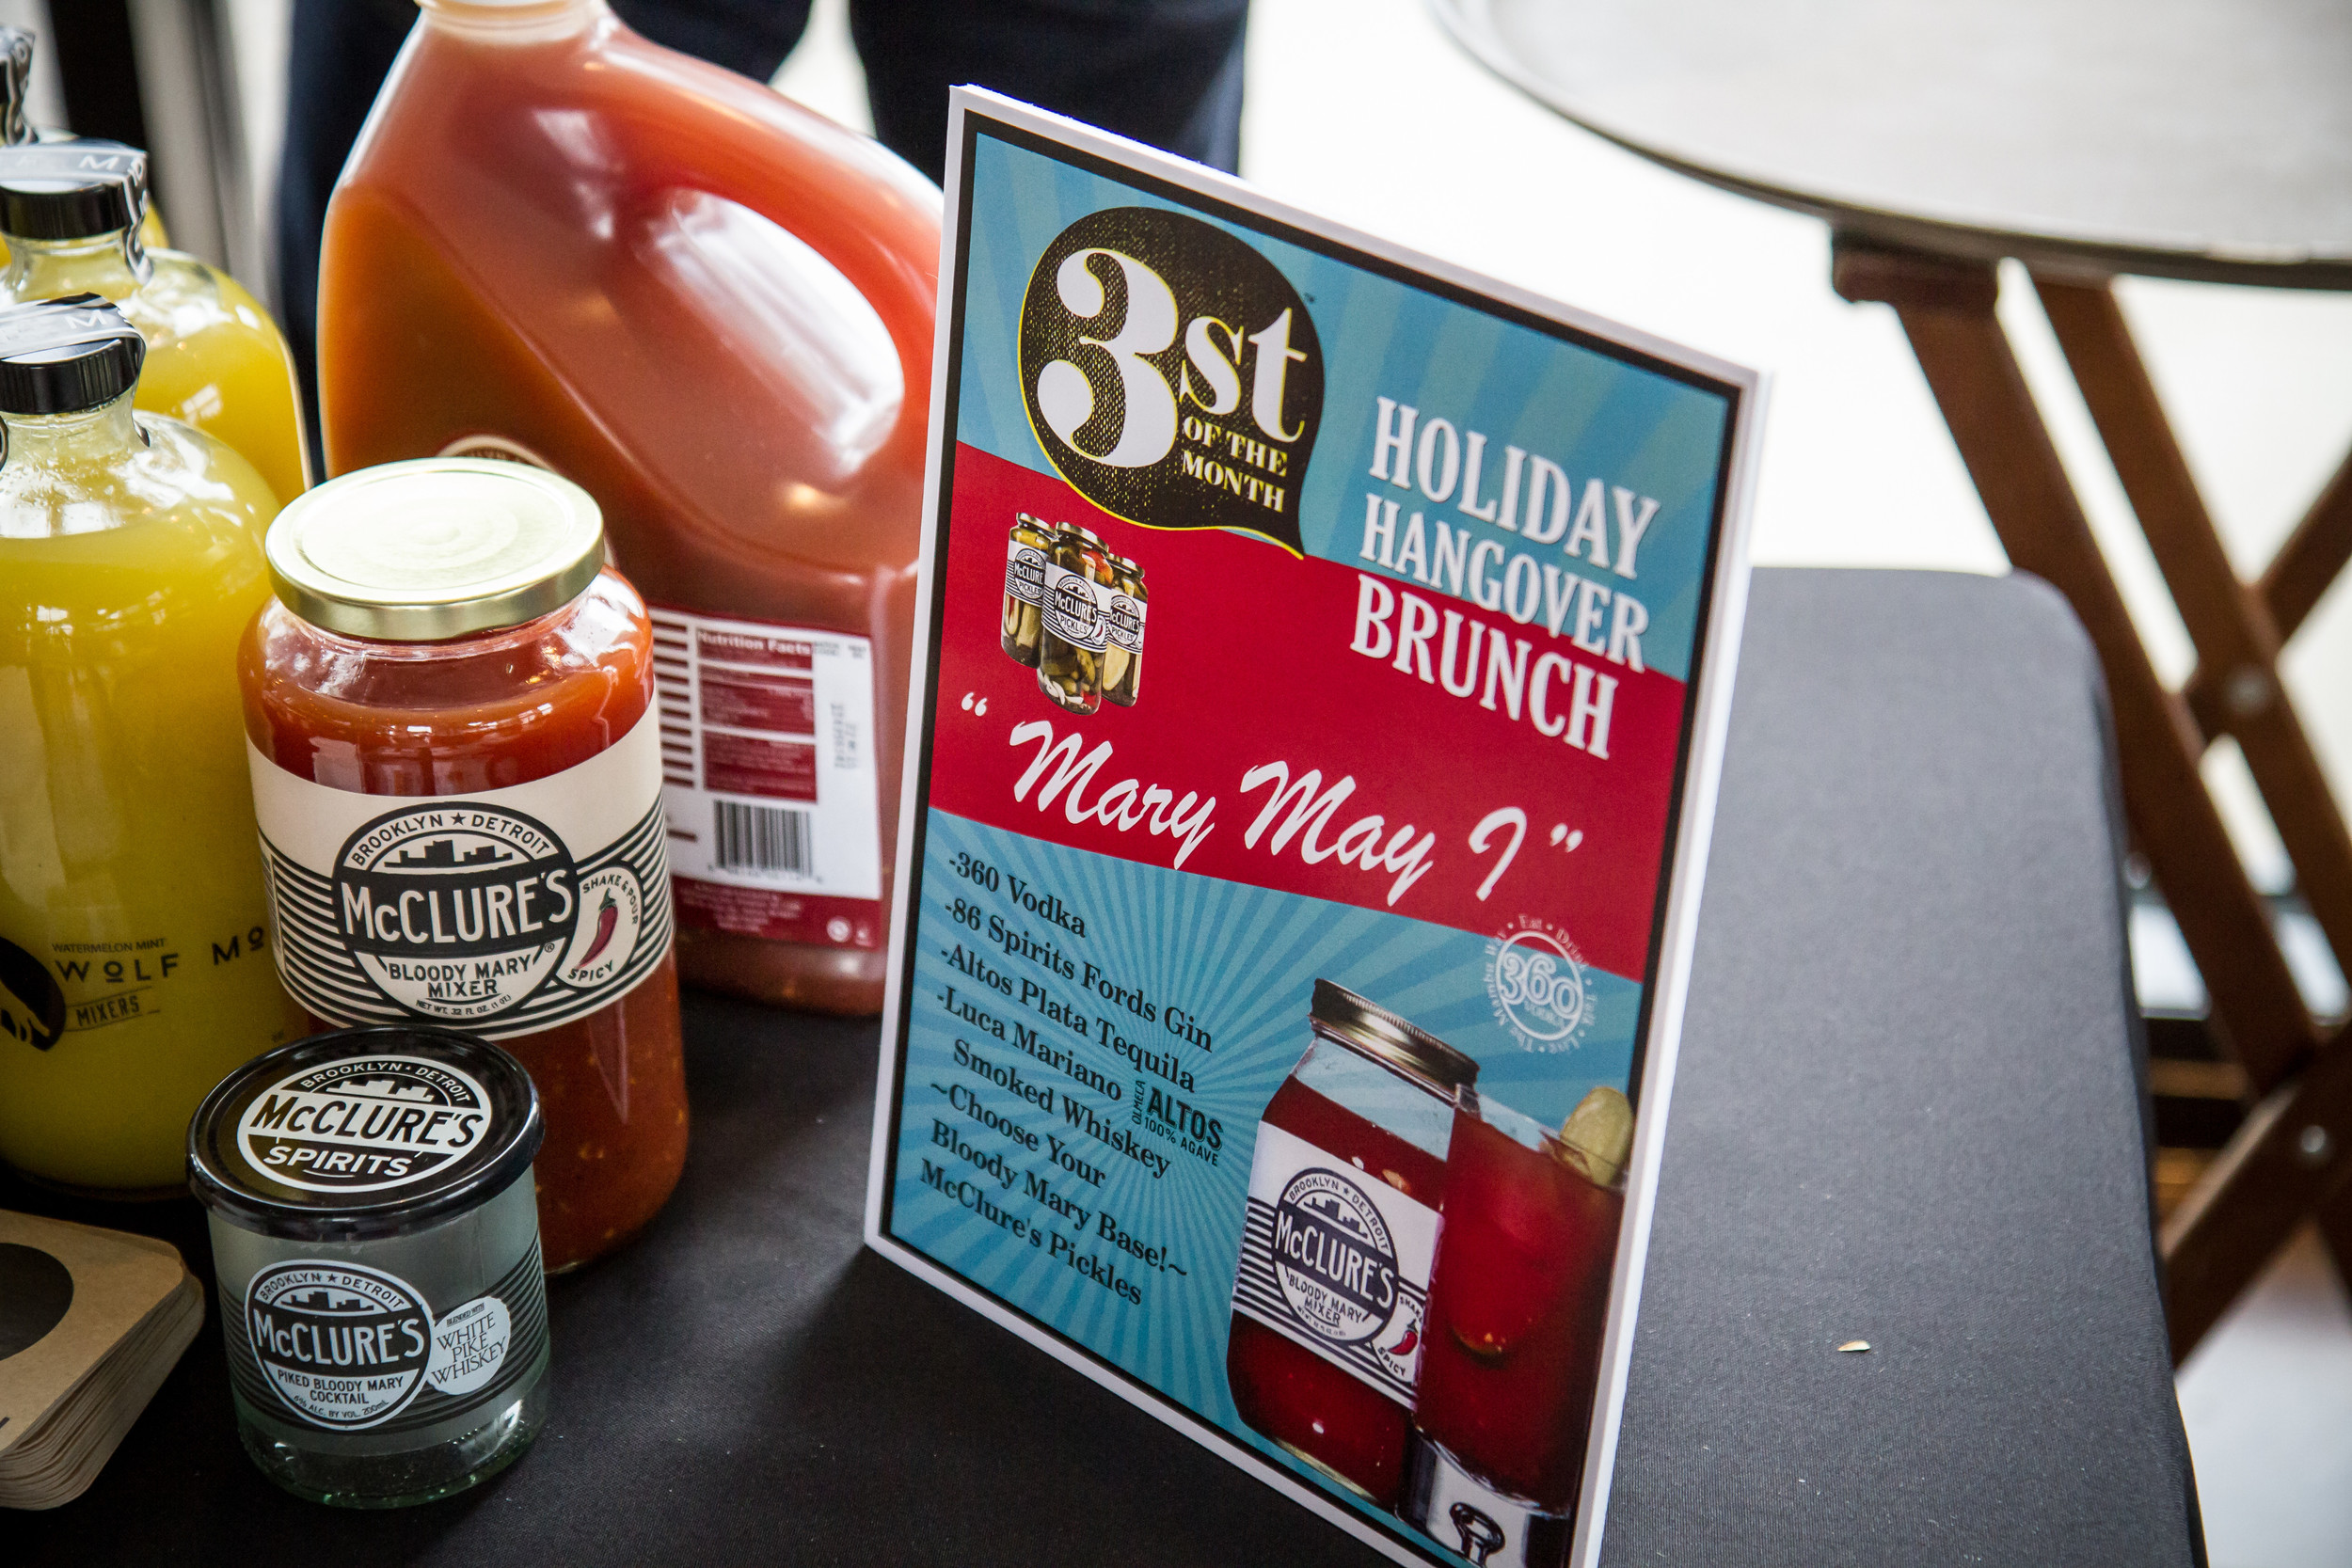 0768-3st Of The Month_Holiday Hangover Brunch.jpg